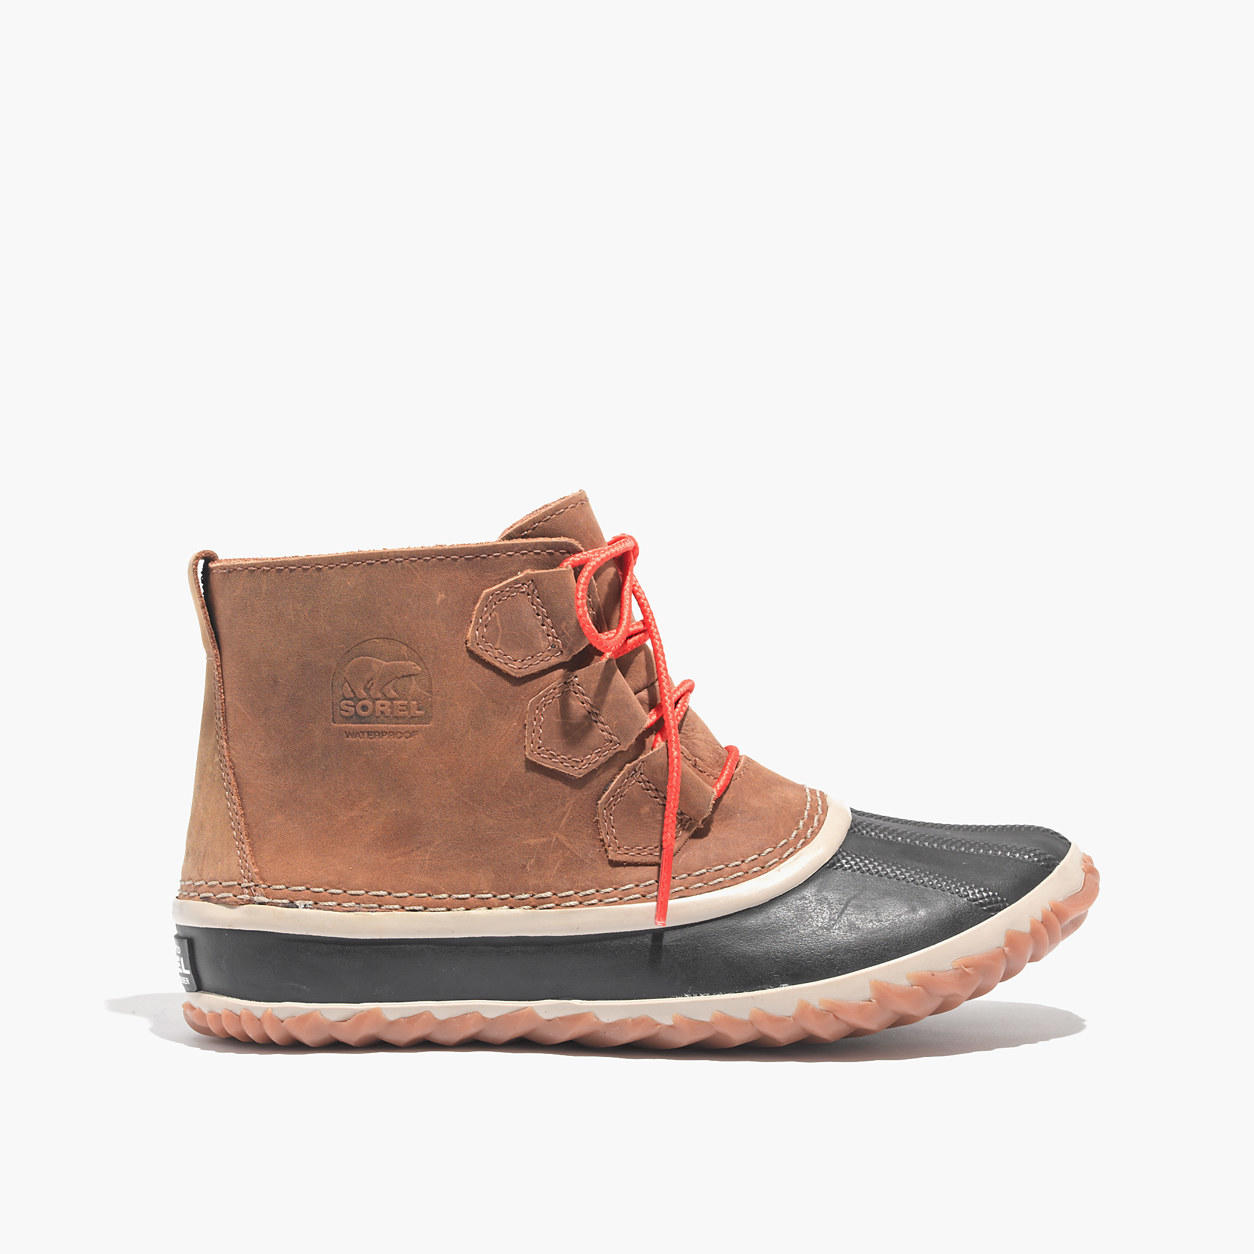 Sorel 174 Amp Madewell Out N About Boots From Madewell Shoes